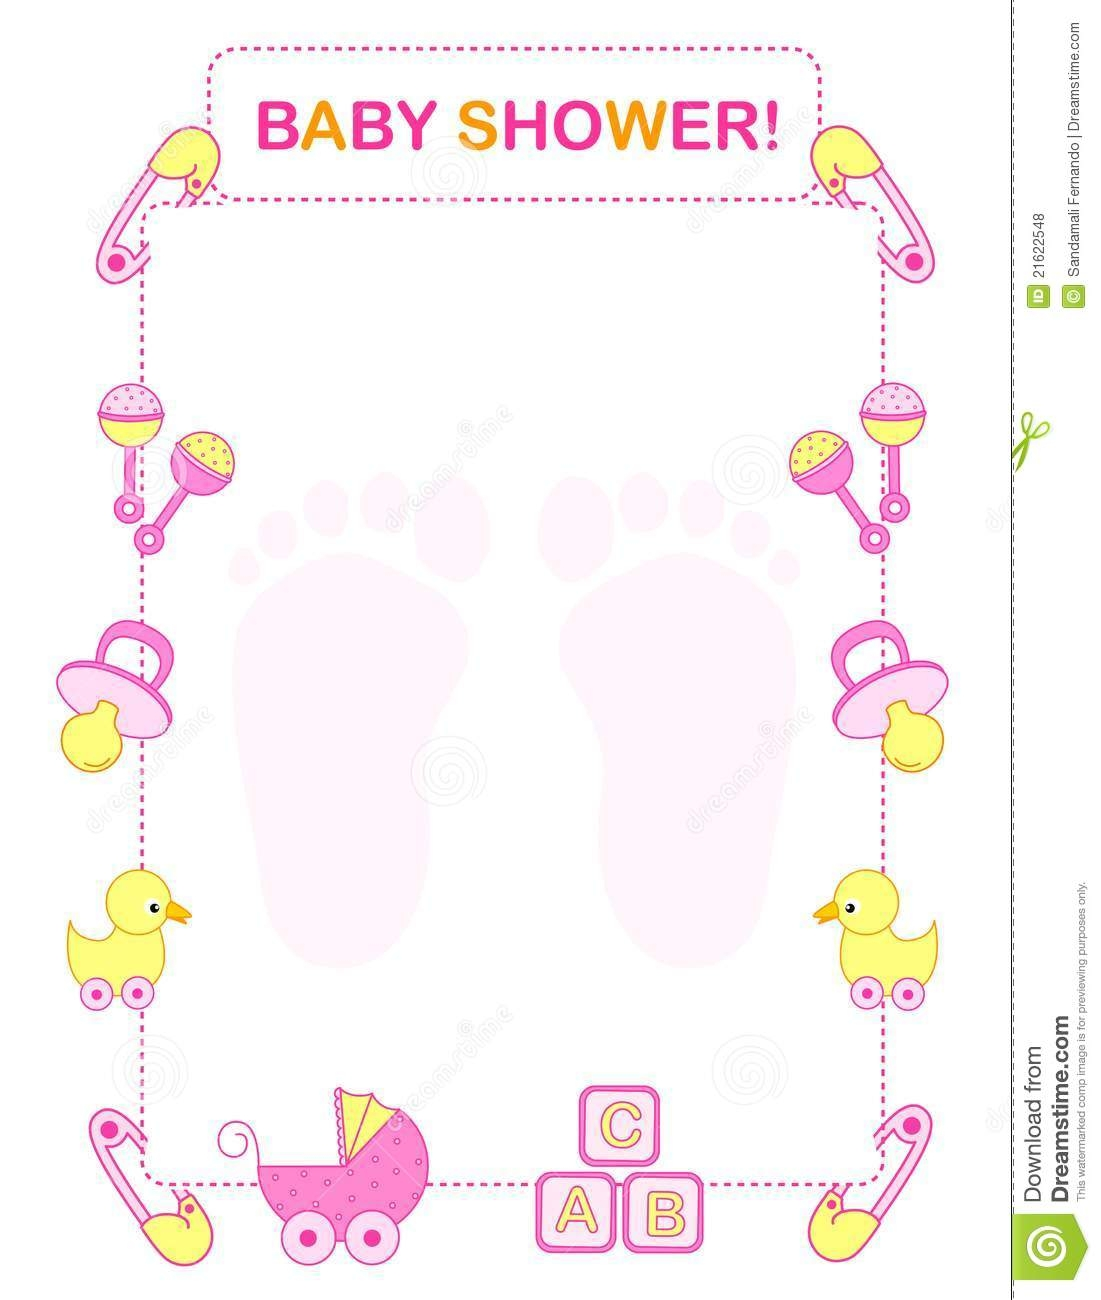 patrick coloring pages - baby shower border clip art